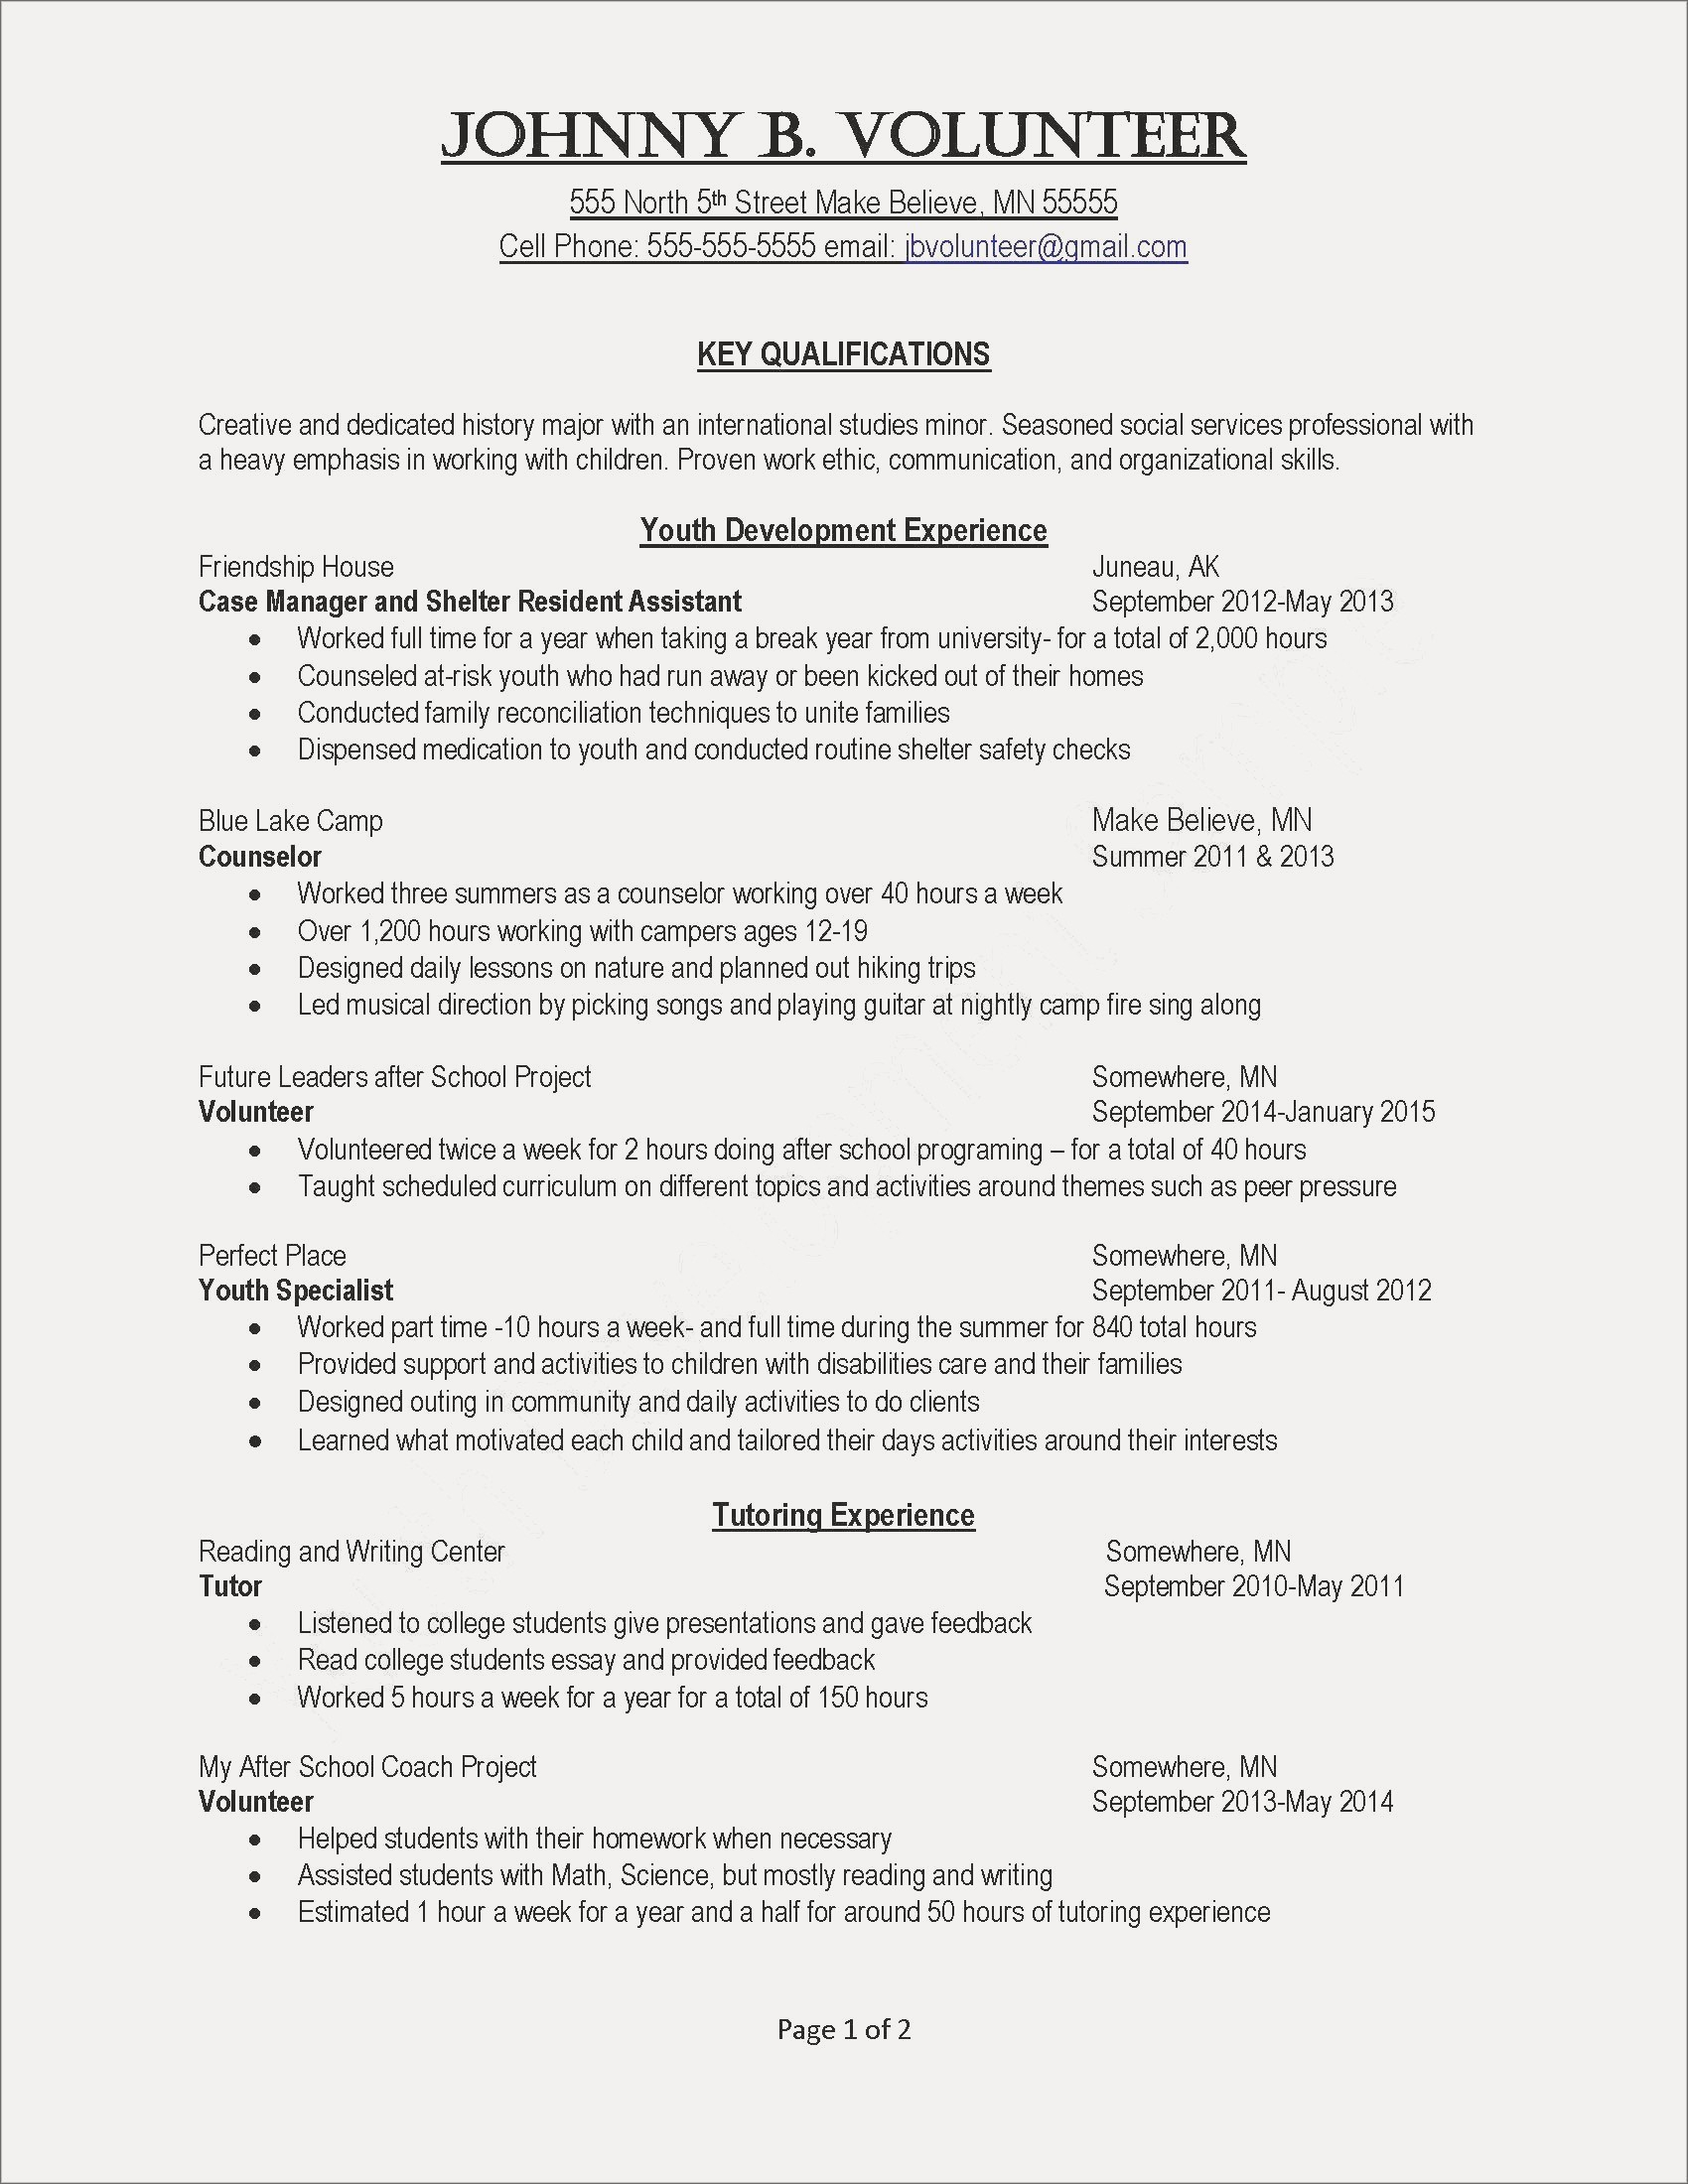 Scientist Resume Samples - Excellent Essay Examples New Essay Example Save Resumes Skills